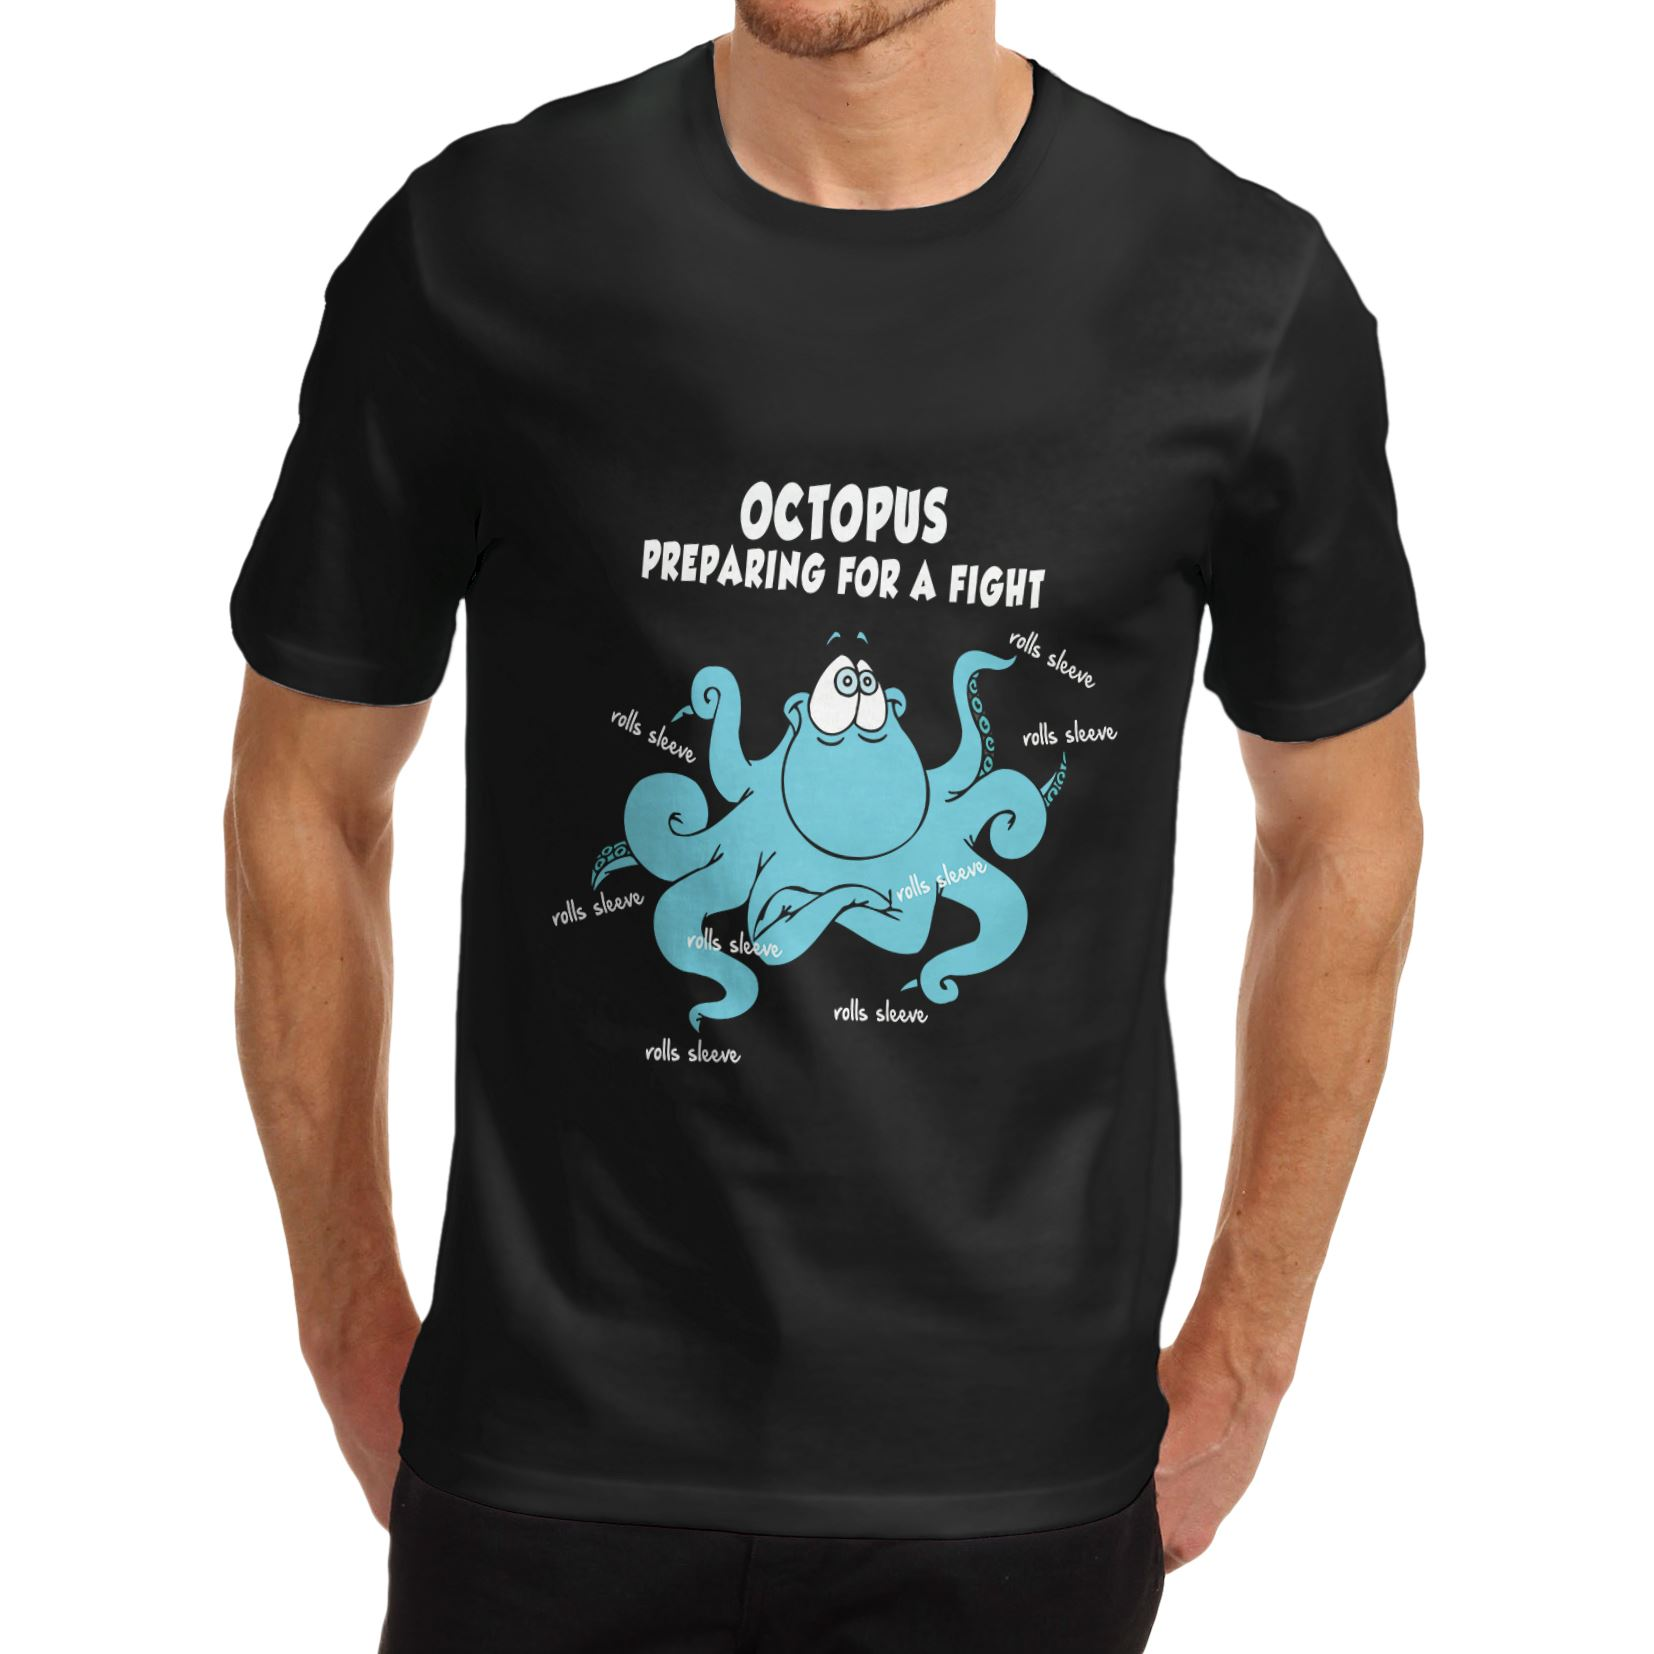 Men/'s Octopus Preparing For A Fight Cotton Novelty Funny T-Shirt